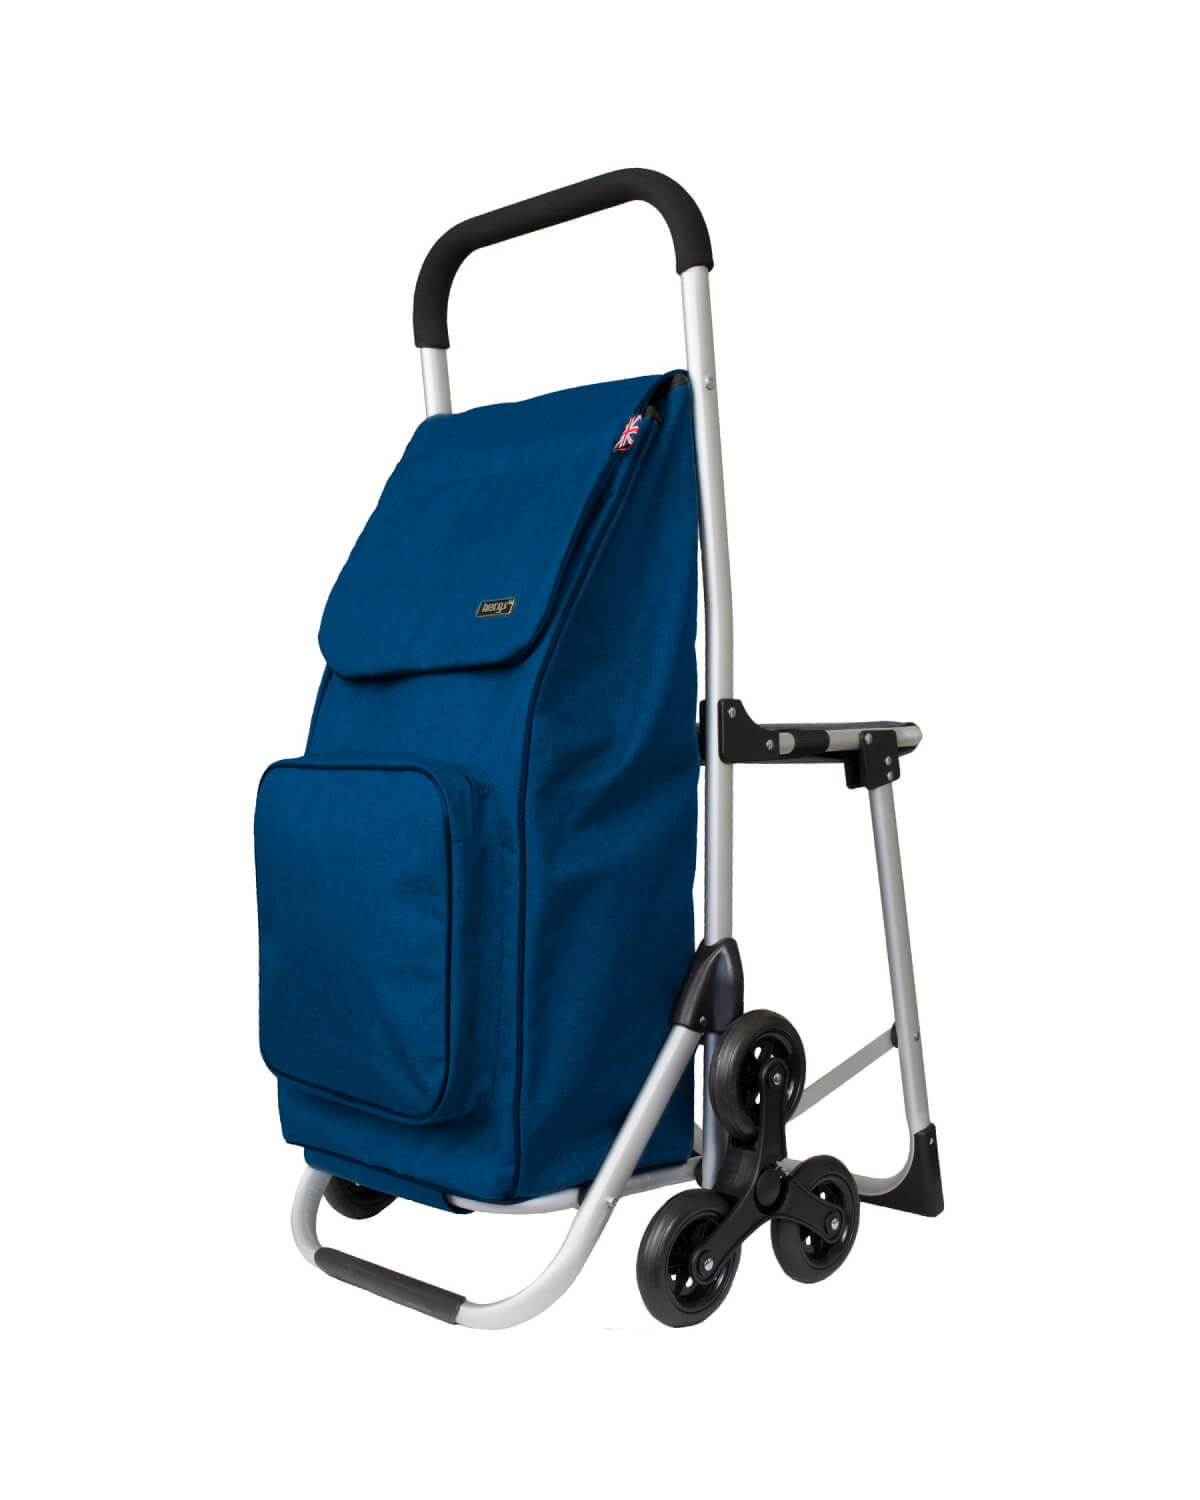 BergsCaddie Seat Trolley with 3 Wheels for Climbing Stairs Blue